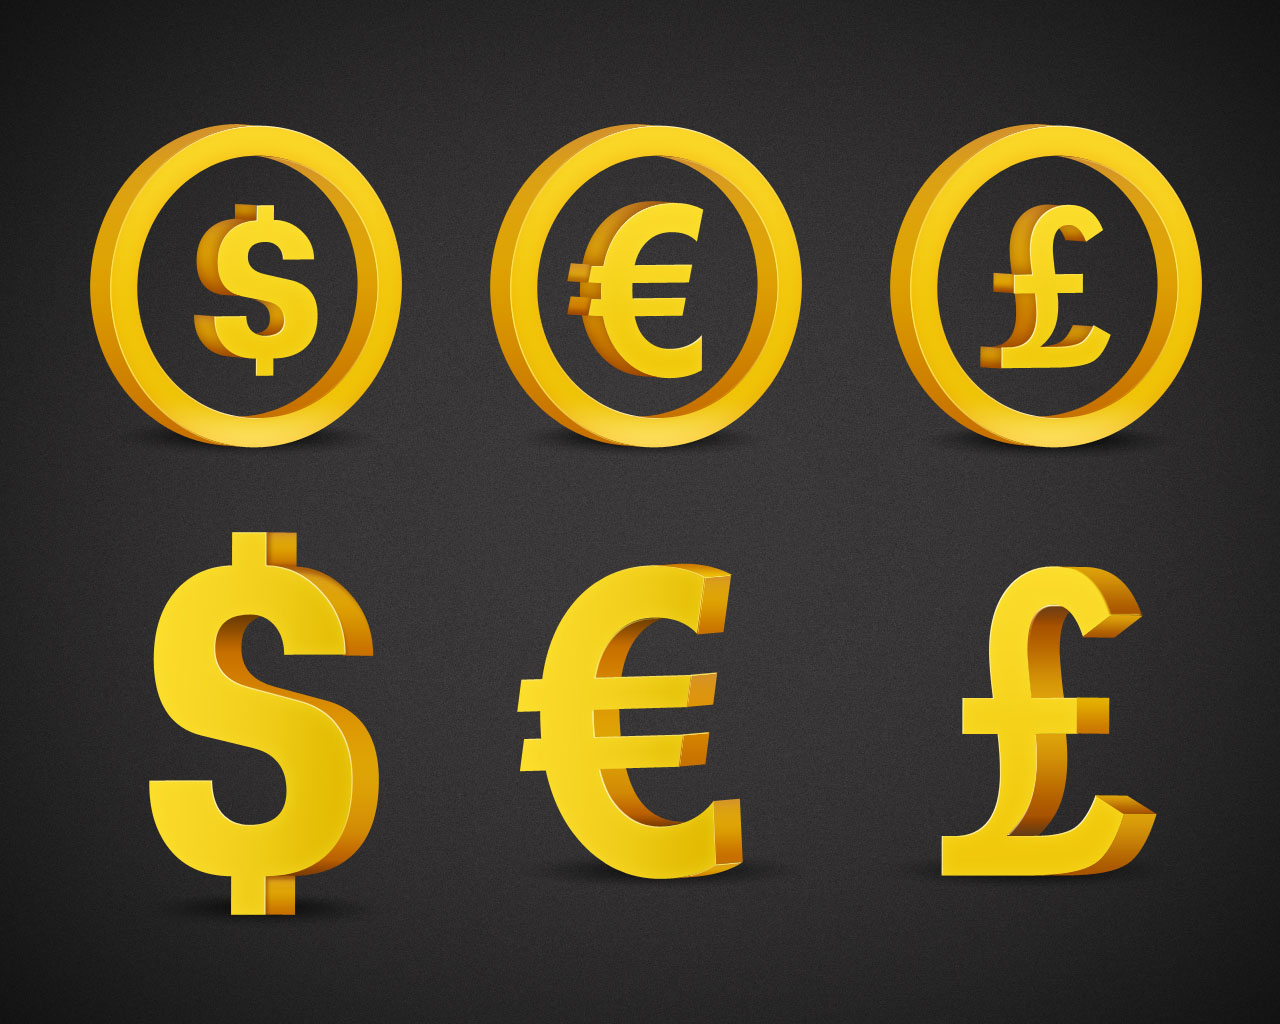 Currency 3D icons in PSD format